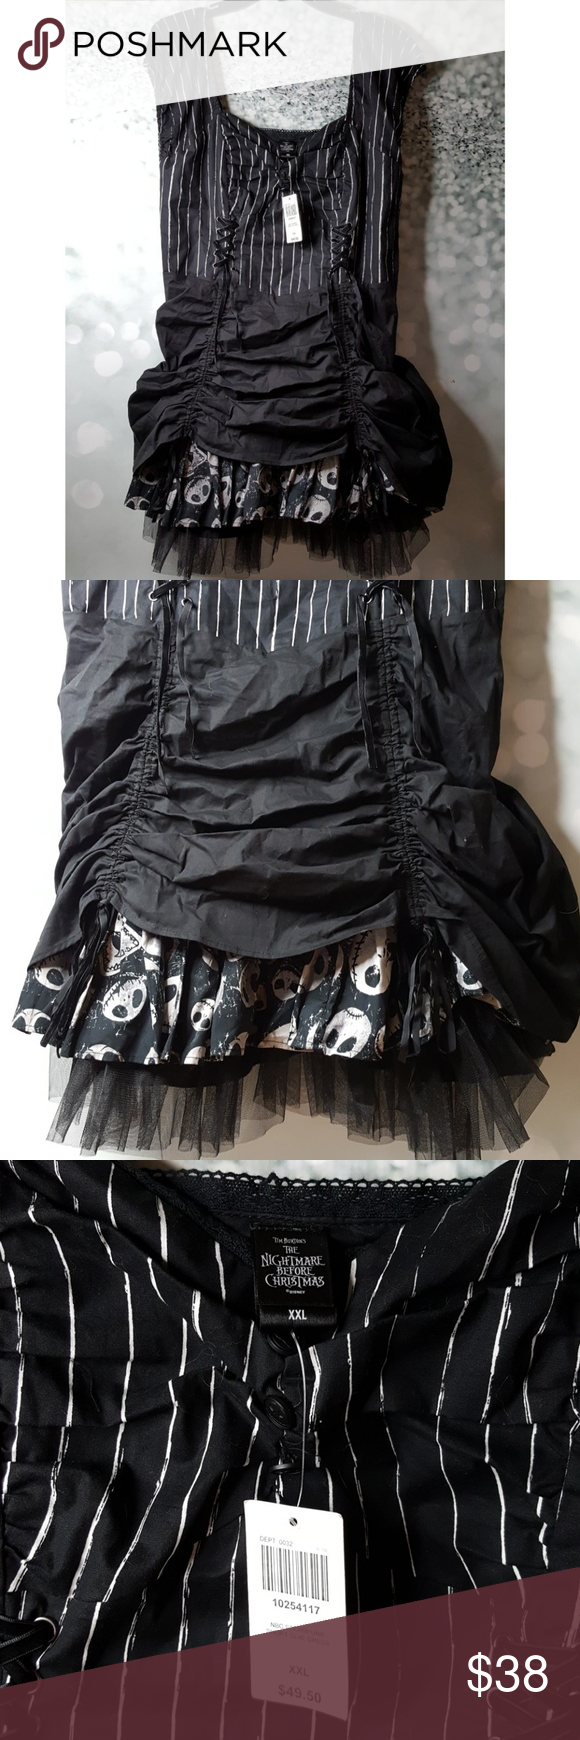 Nightmare before Christmas costume NWT | Costumes and Customer support